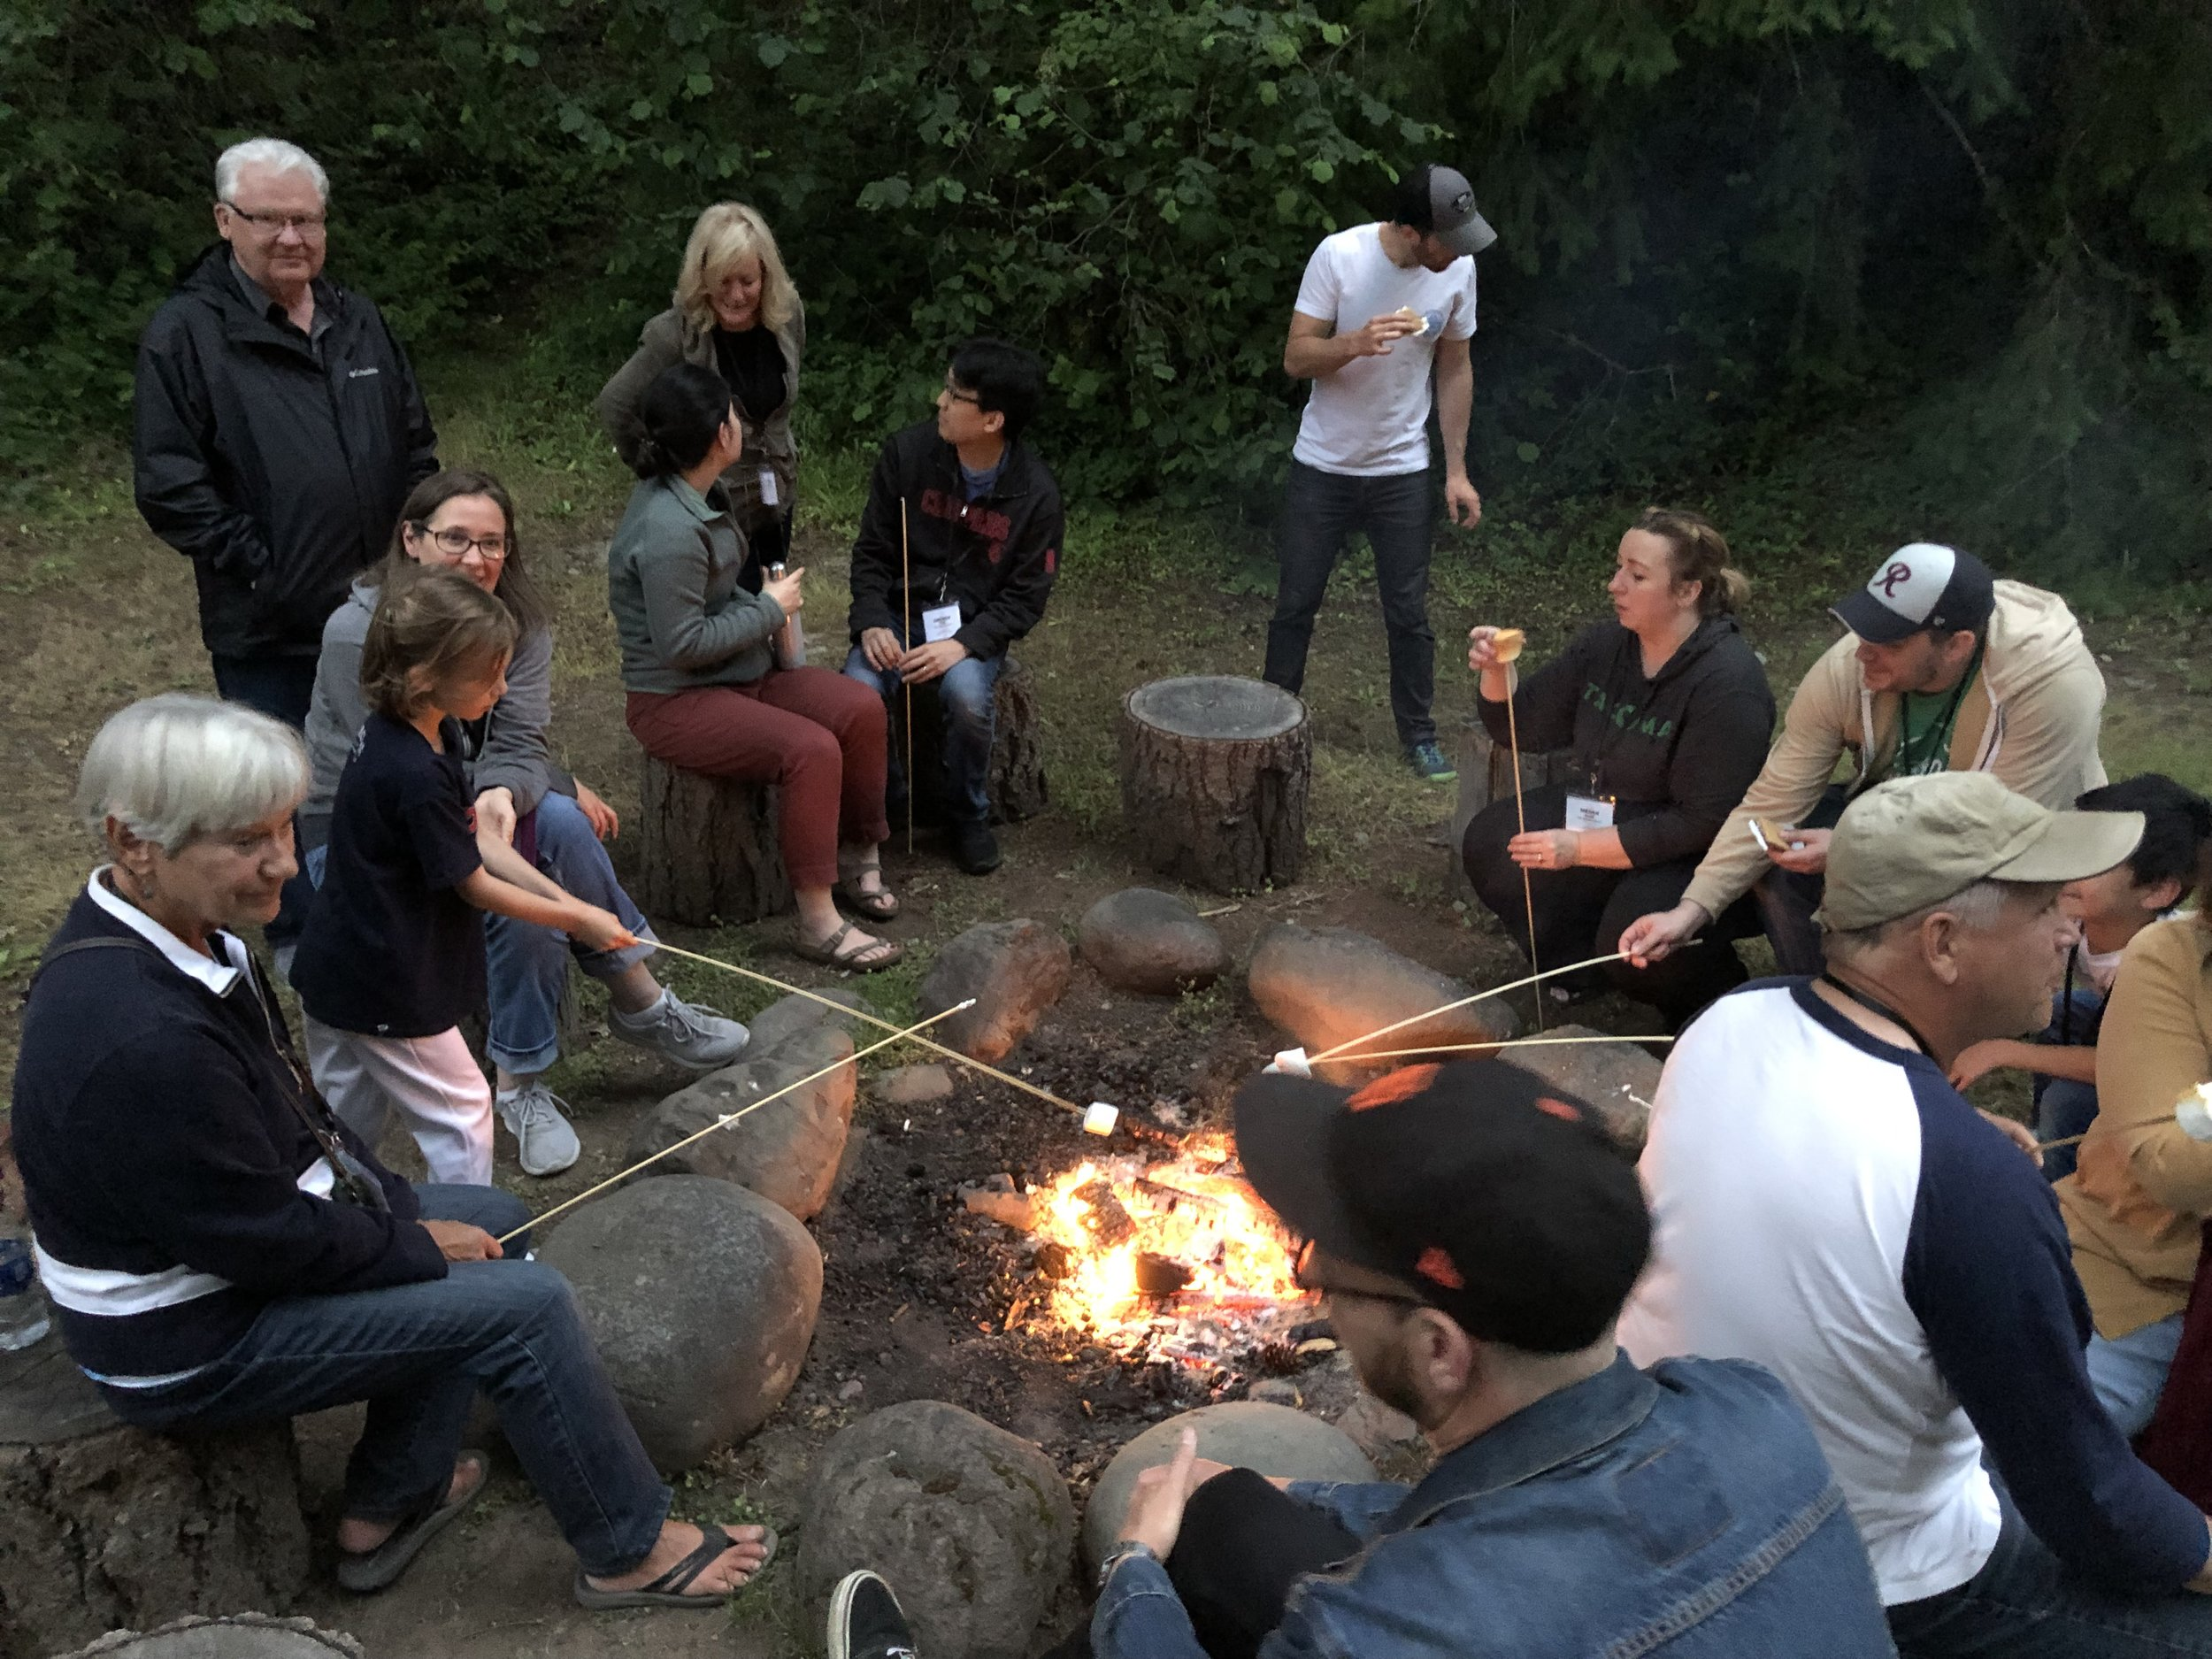 Marshmallows and good conversations around the campfire